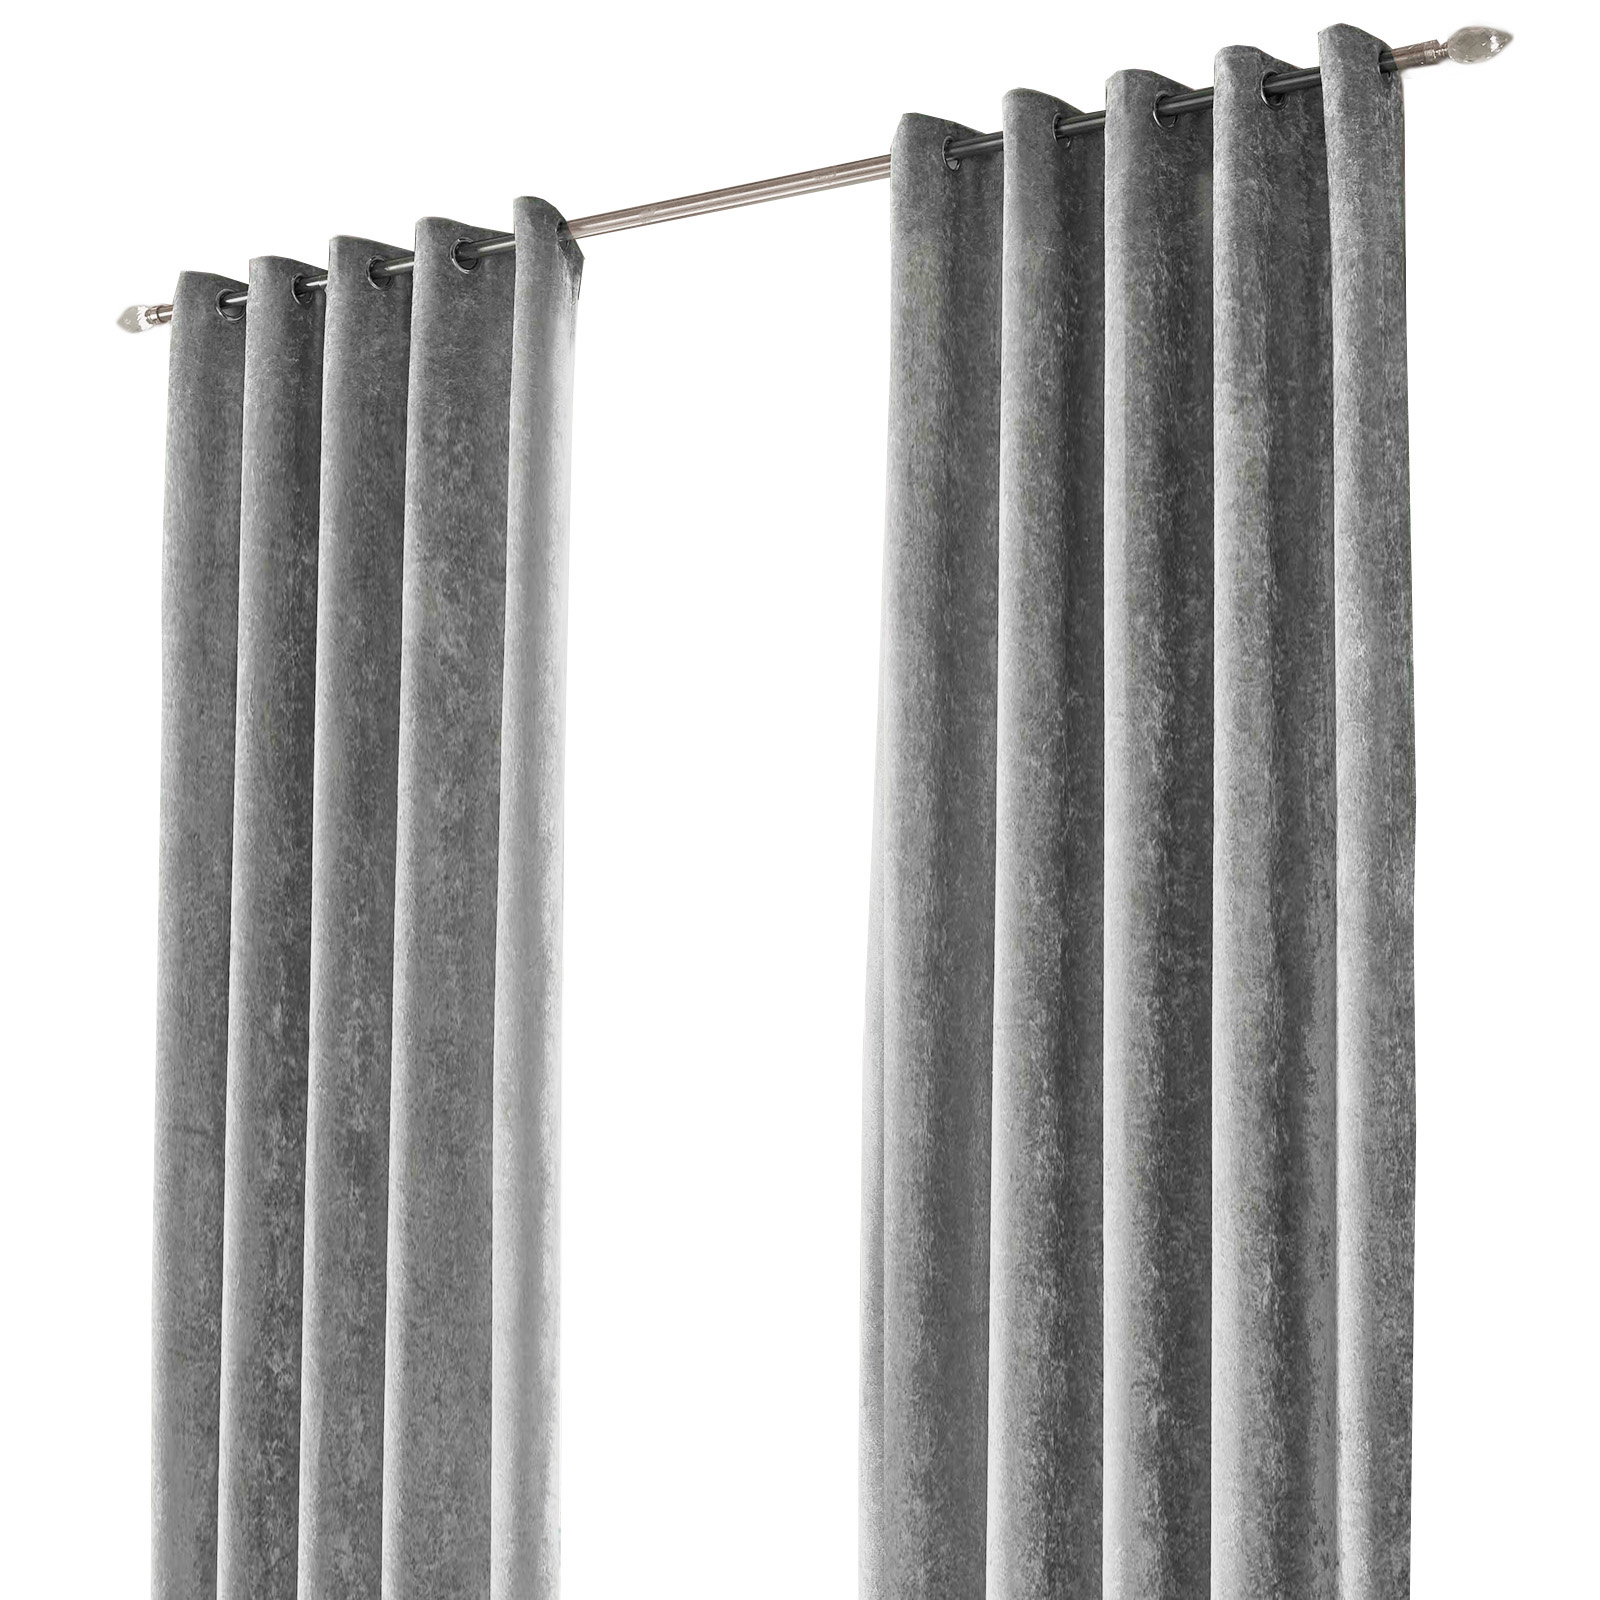 Design Velvet Curtains crush crushed velvet pair of fully lined ring top eyelet curtains silver grey